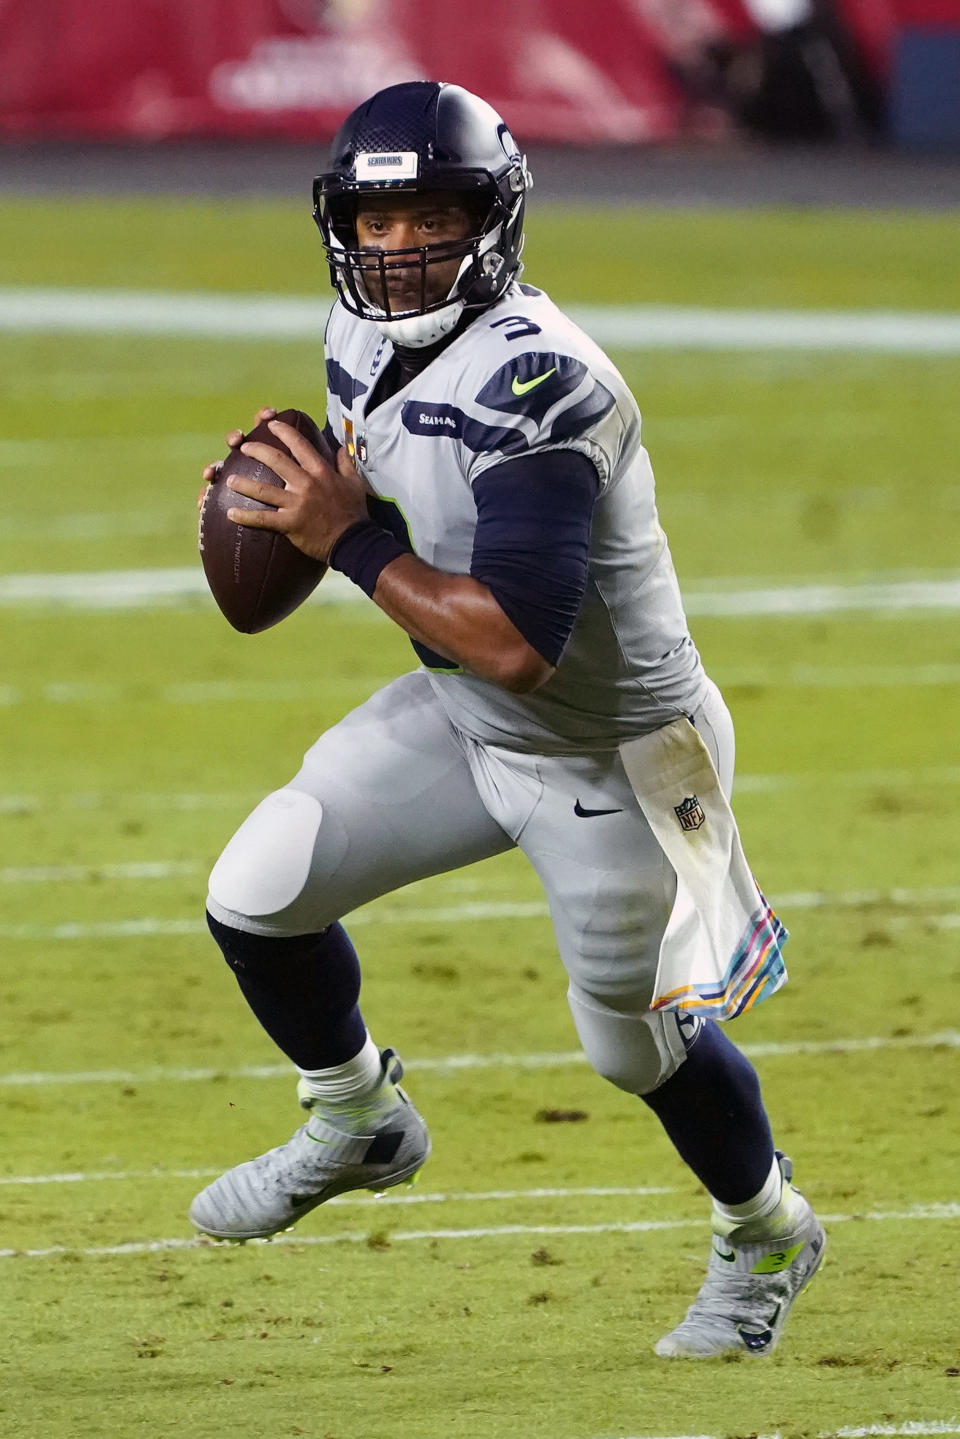 Seattle Seahawks quarterback Russell Wilson (3) looks to throw against the Arizona Cardinals during the first half of an NFL football game, Sunday, Oct. 25, 2020, in Glendale, Ariz. With the NFC East a total mess, the conference's West Division is so strong that three teams, possibly all four, figure to challenge for the playoffs. (AP Photo/Rick Scuteri)